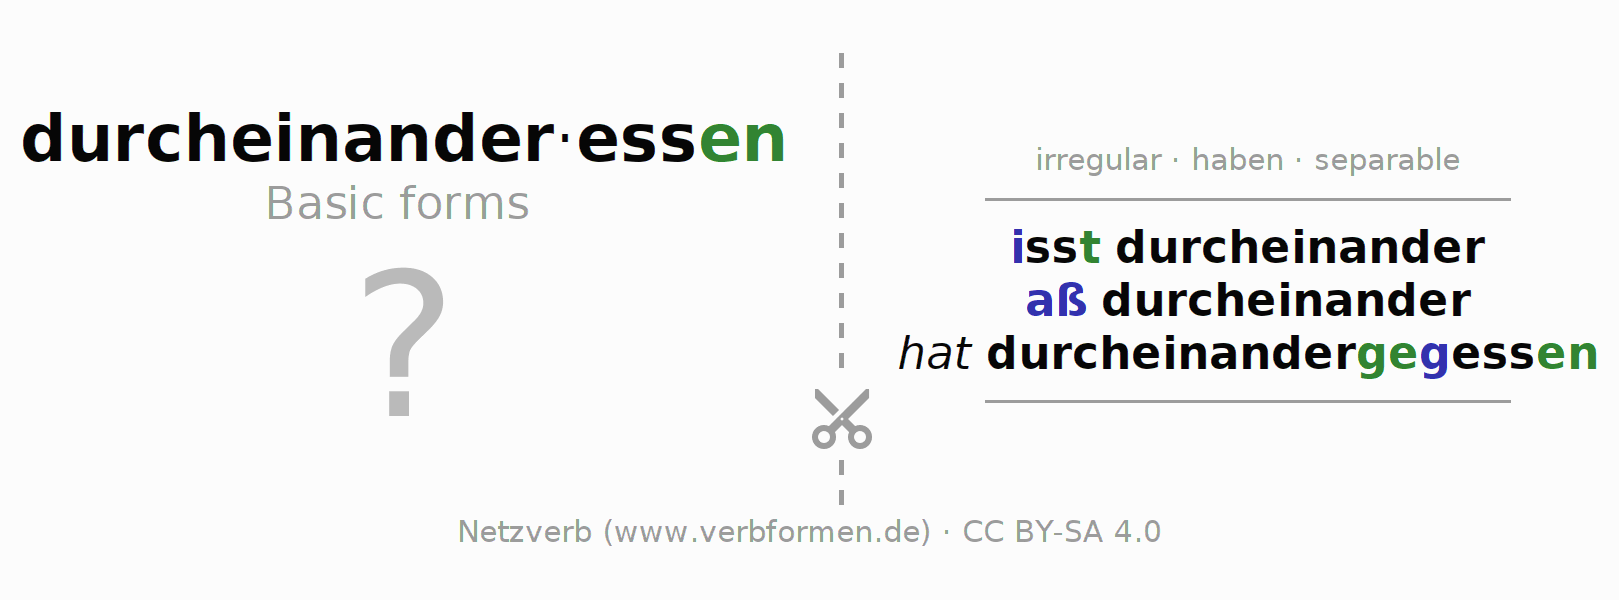 Flash cards for the conjugation of the verb durcheinanderessen